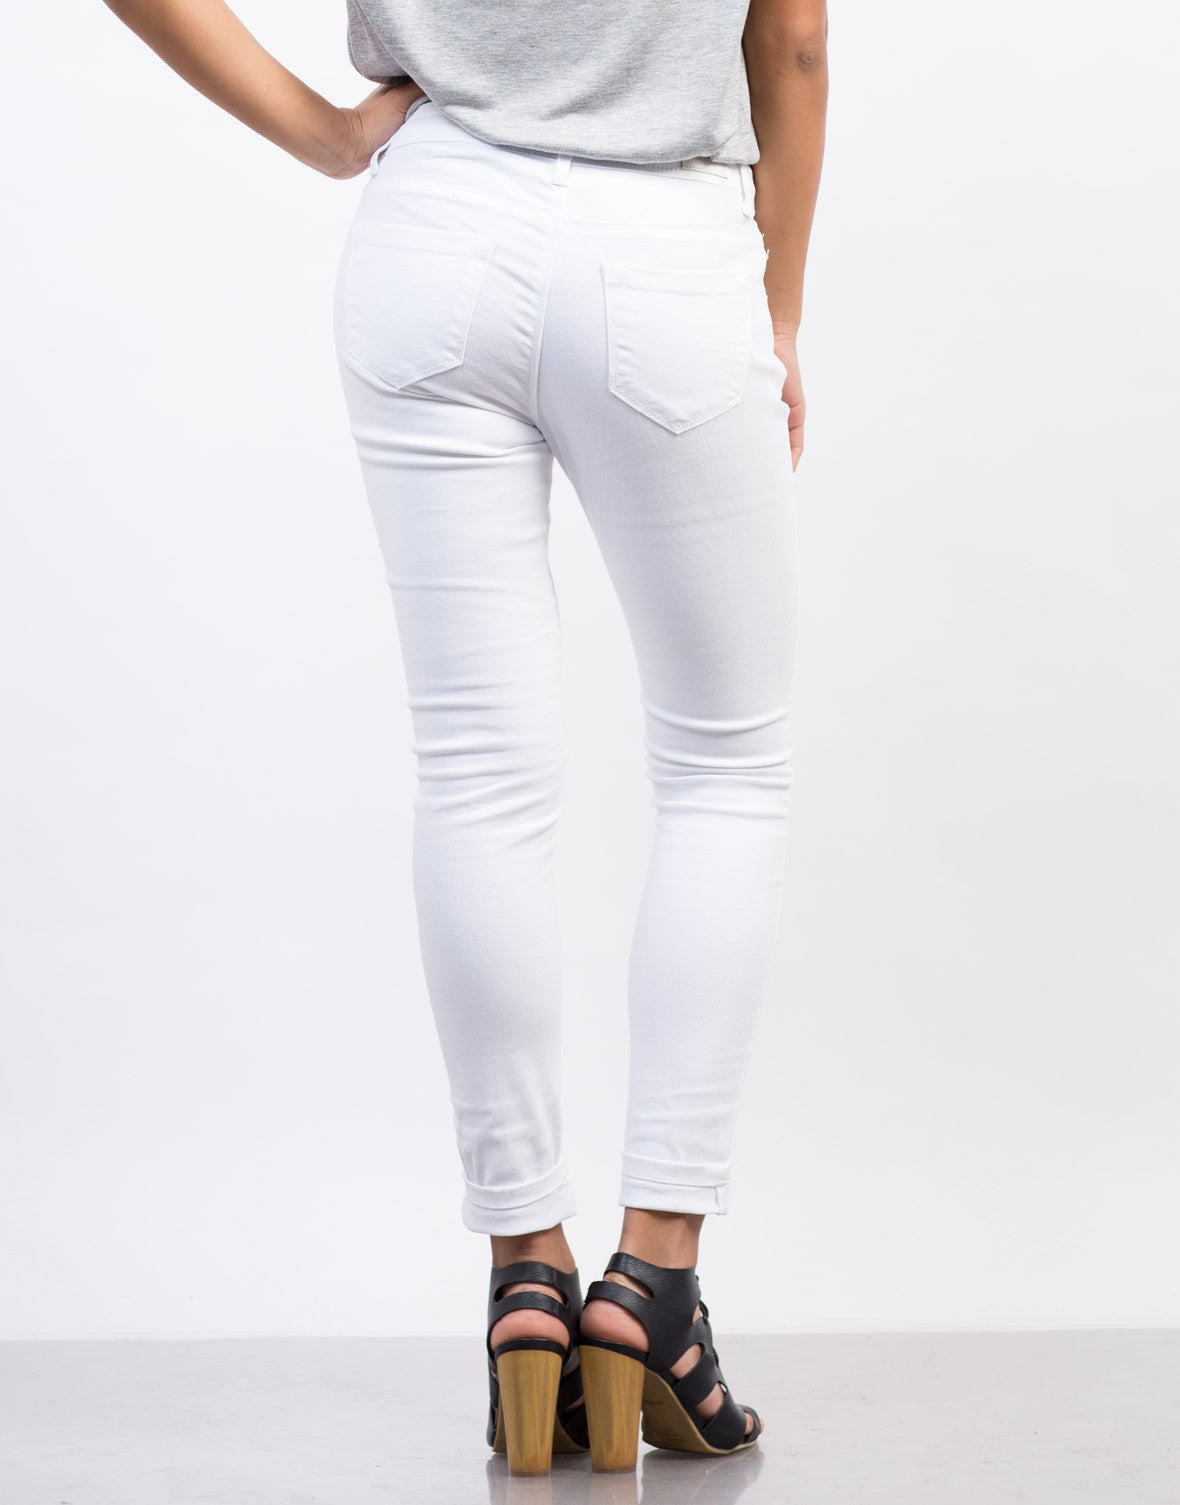 Back View of Solid Skinny Pants